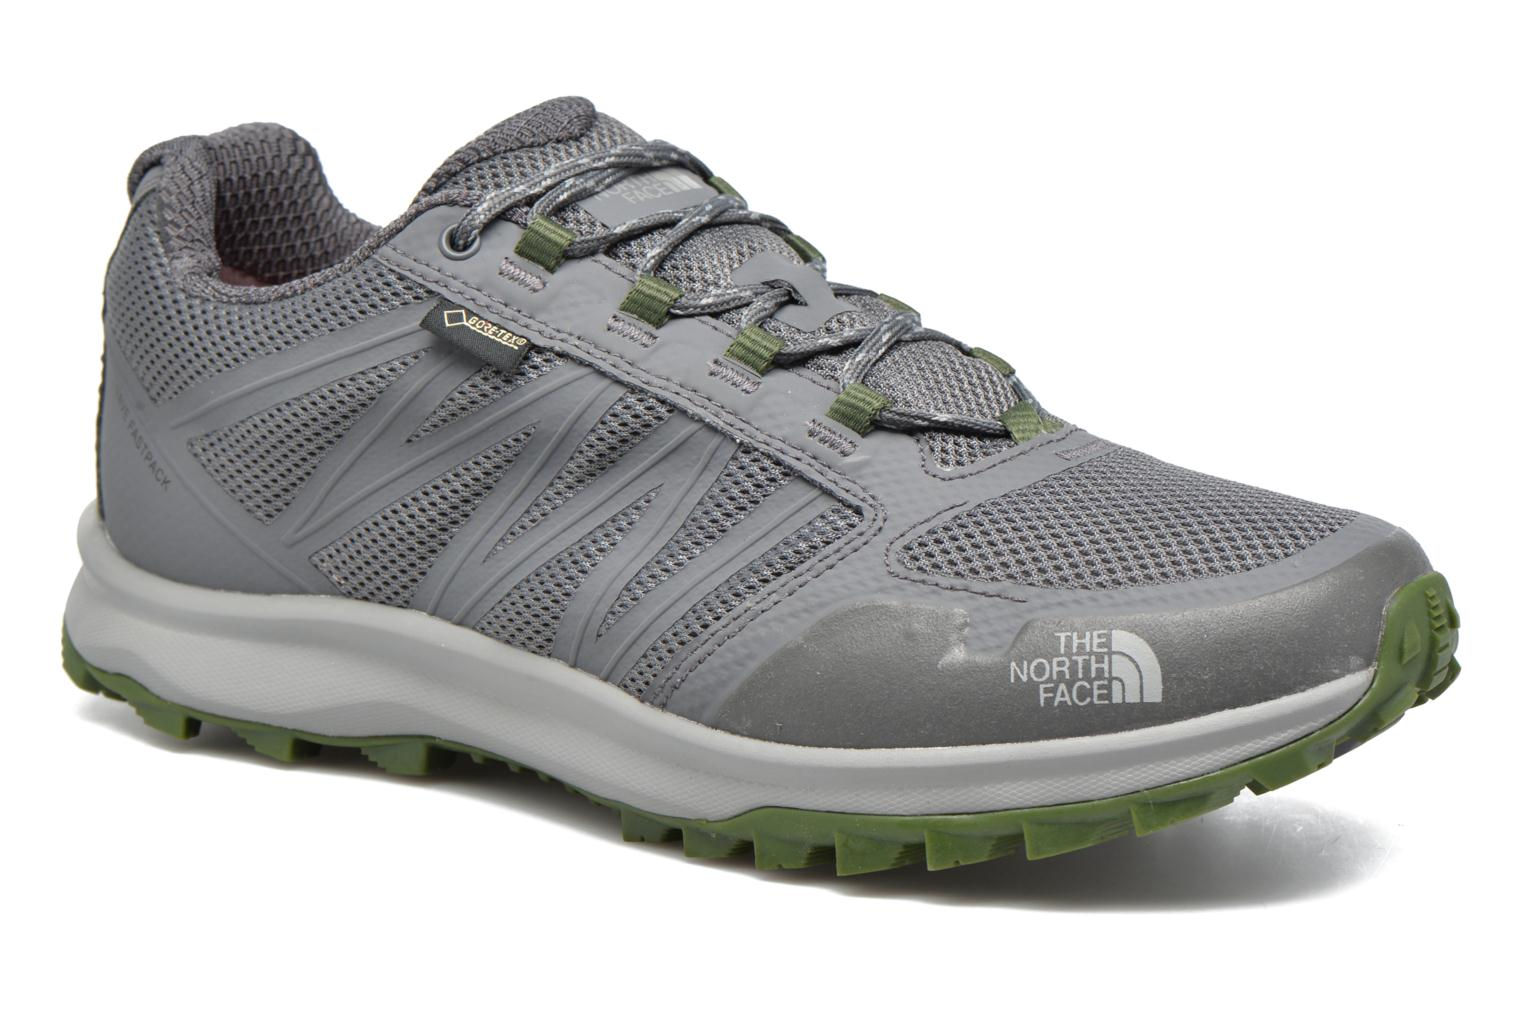 Factory Sale The North Face Litewave Fastpack GTX Grey Sport shoes 292768 Mens zinc grey / scallion green The North Face Mens Sneakers